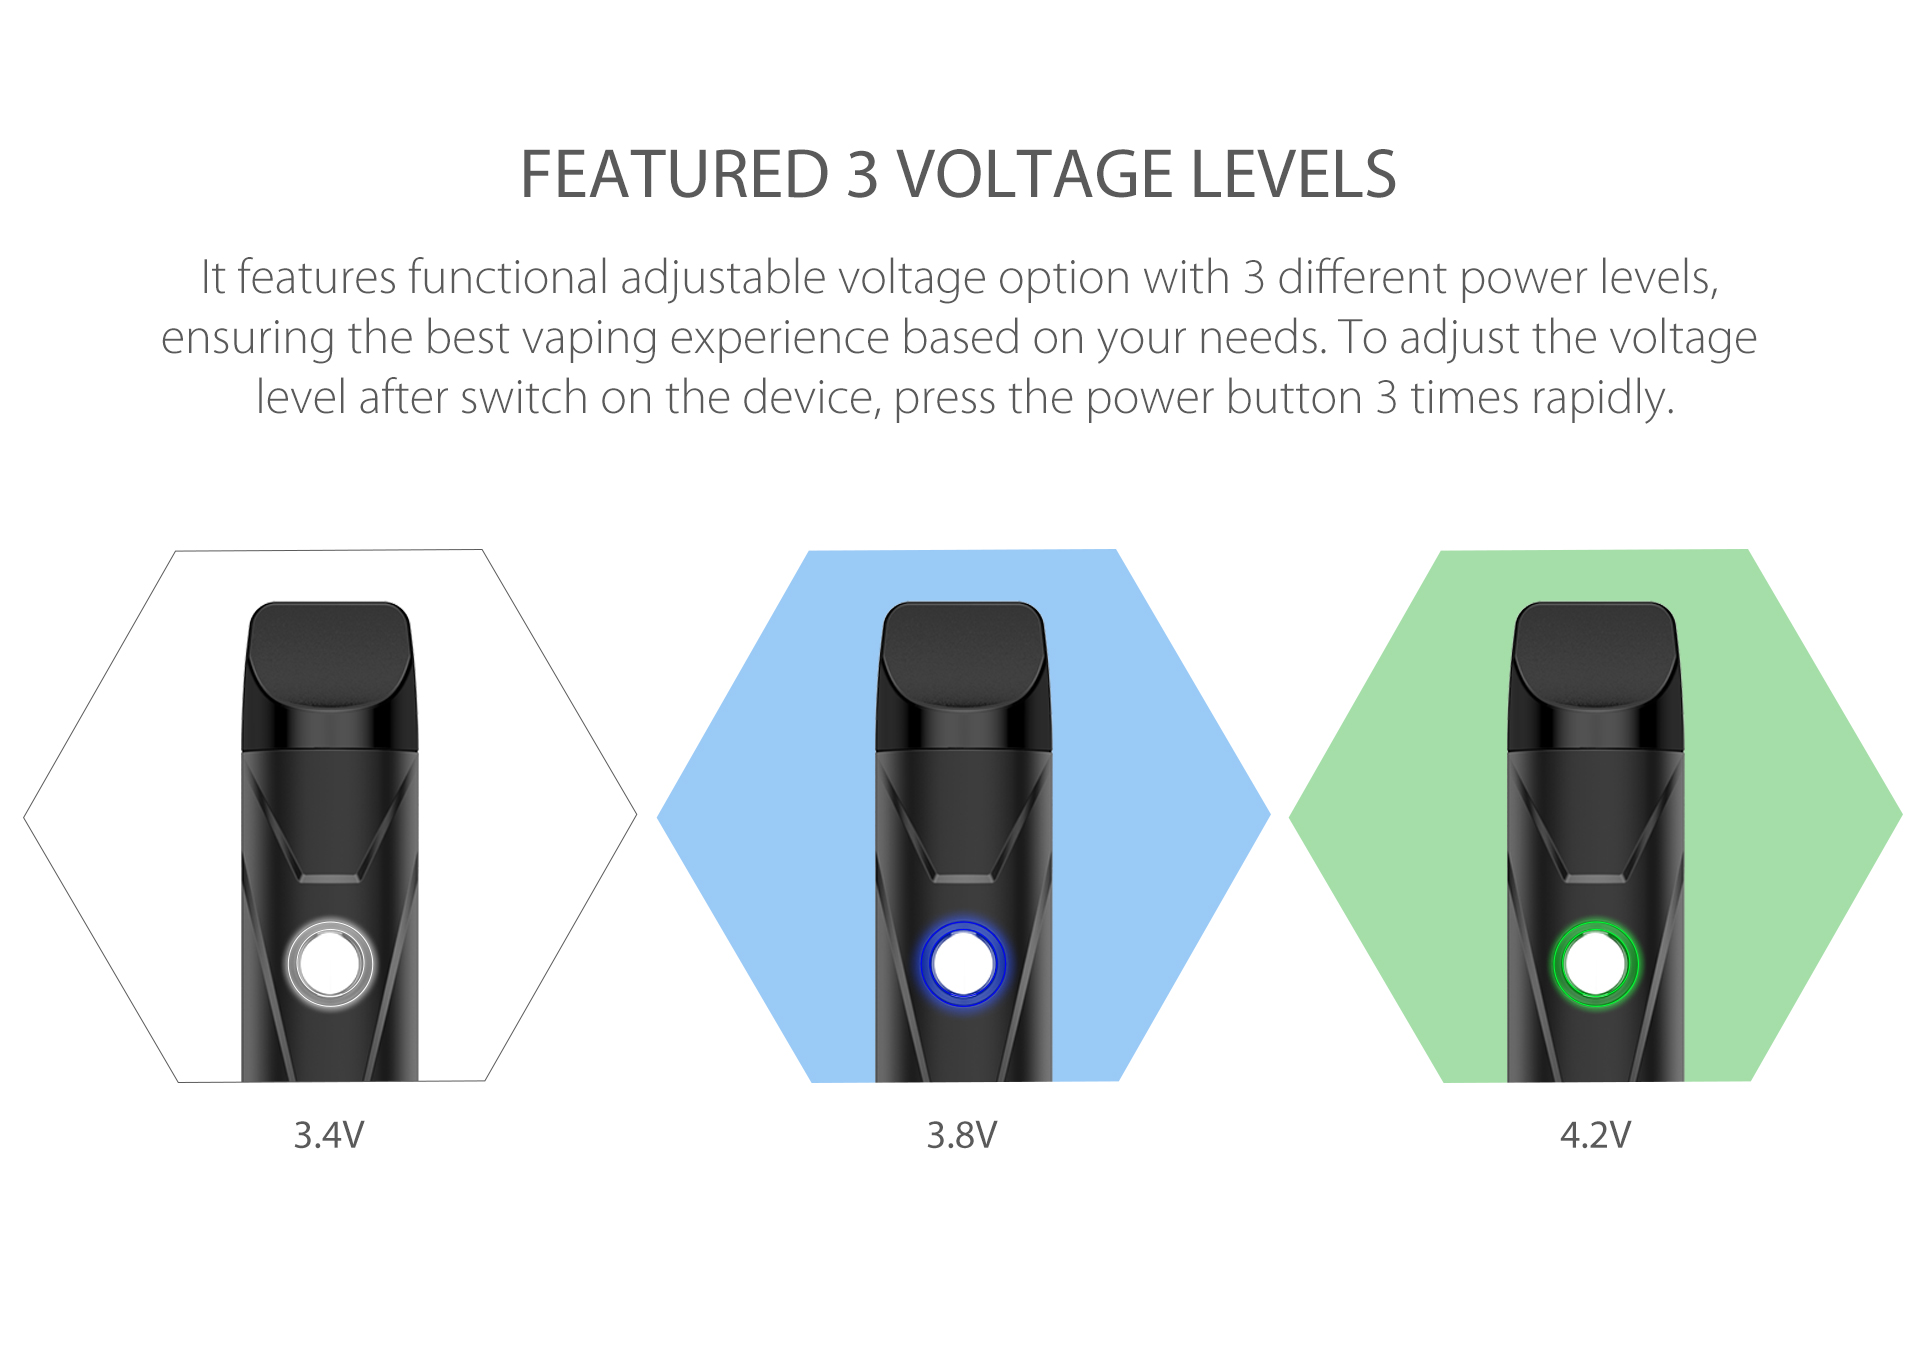 Yocan X Pod System features functional adjustable voltage option with 3 different power levels